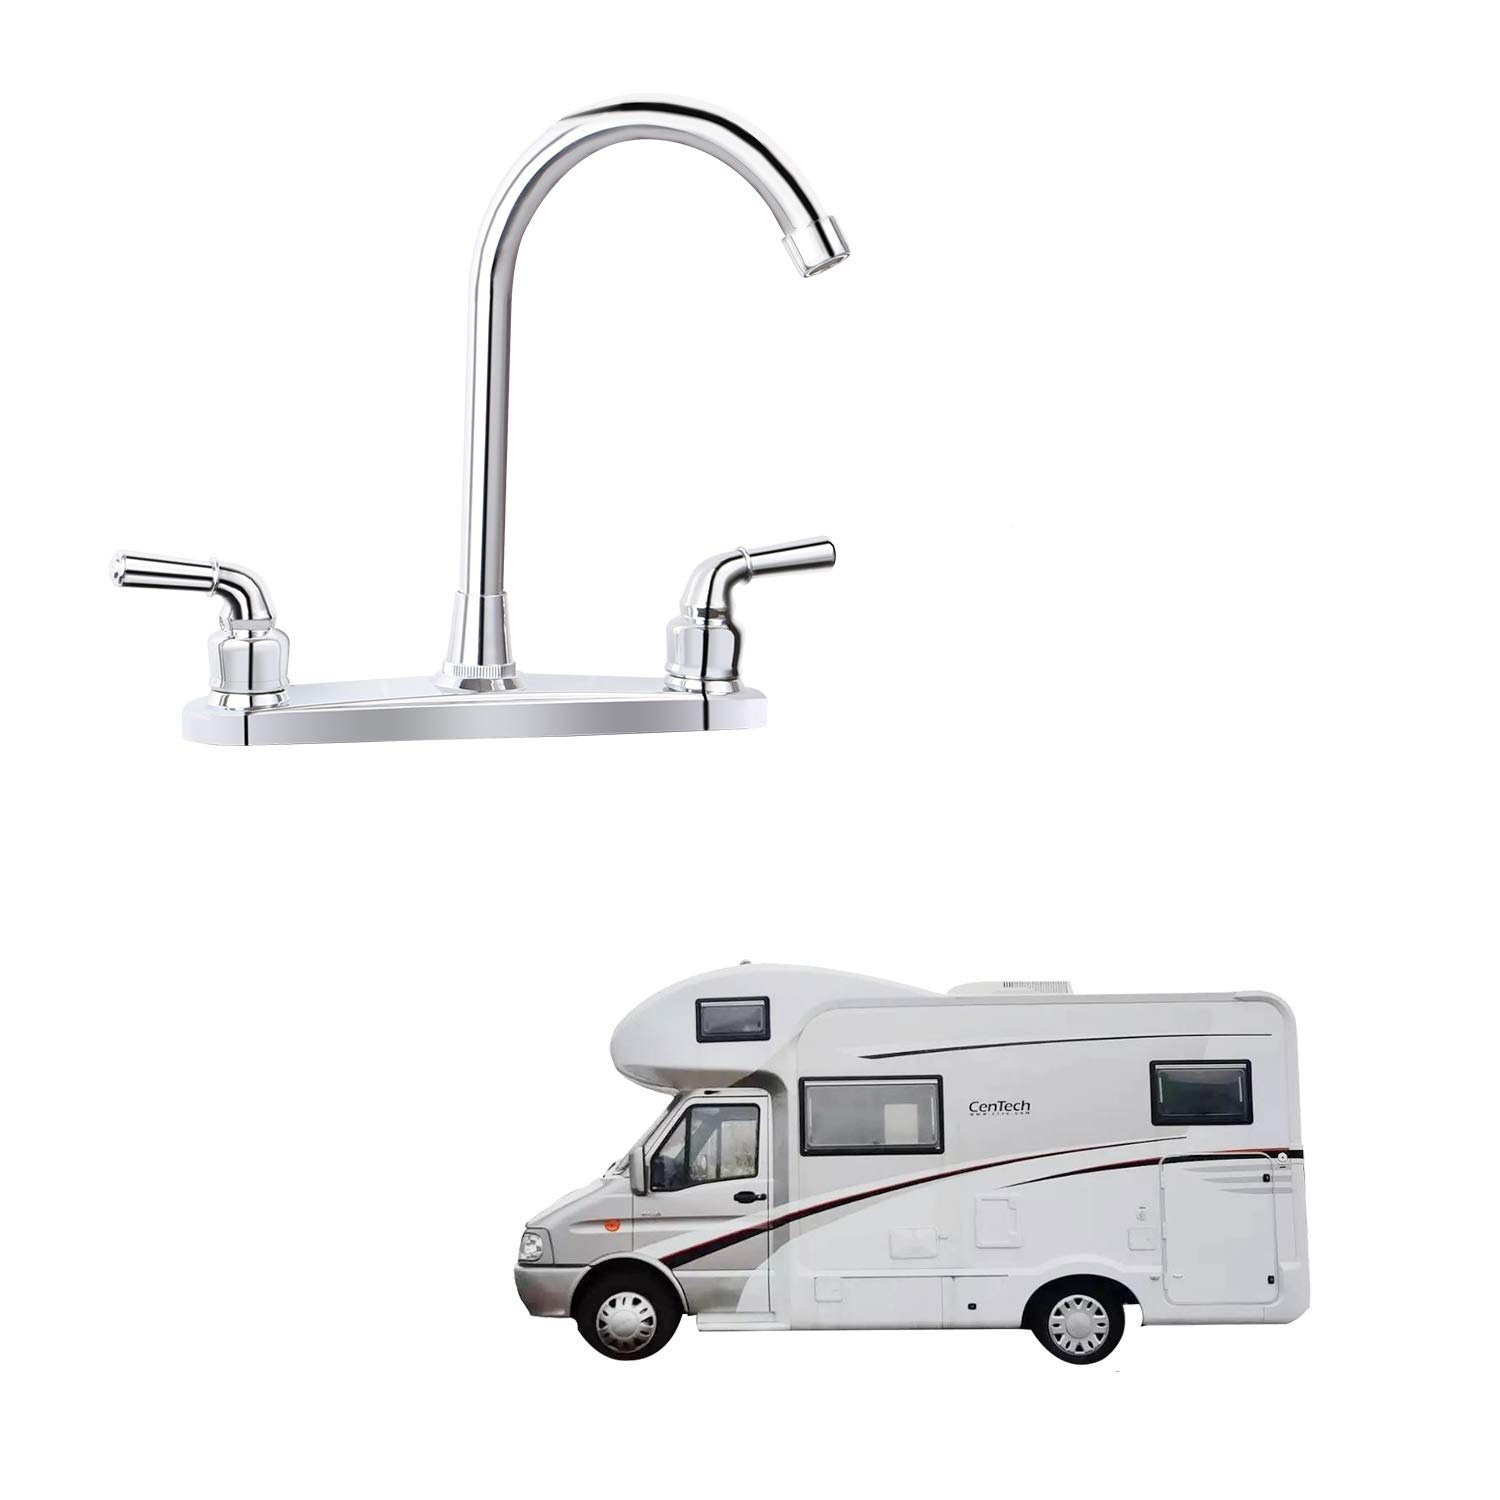 RV Non-metallic Kitchen Faucet Two Handle-High Arch-8''-360 Swivel Replace For Motorhomes, Travel Trailers,Campers (8''HIGH ARCH)